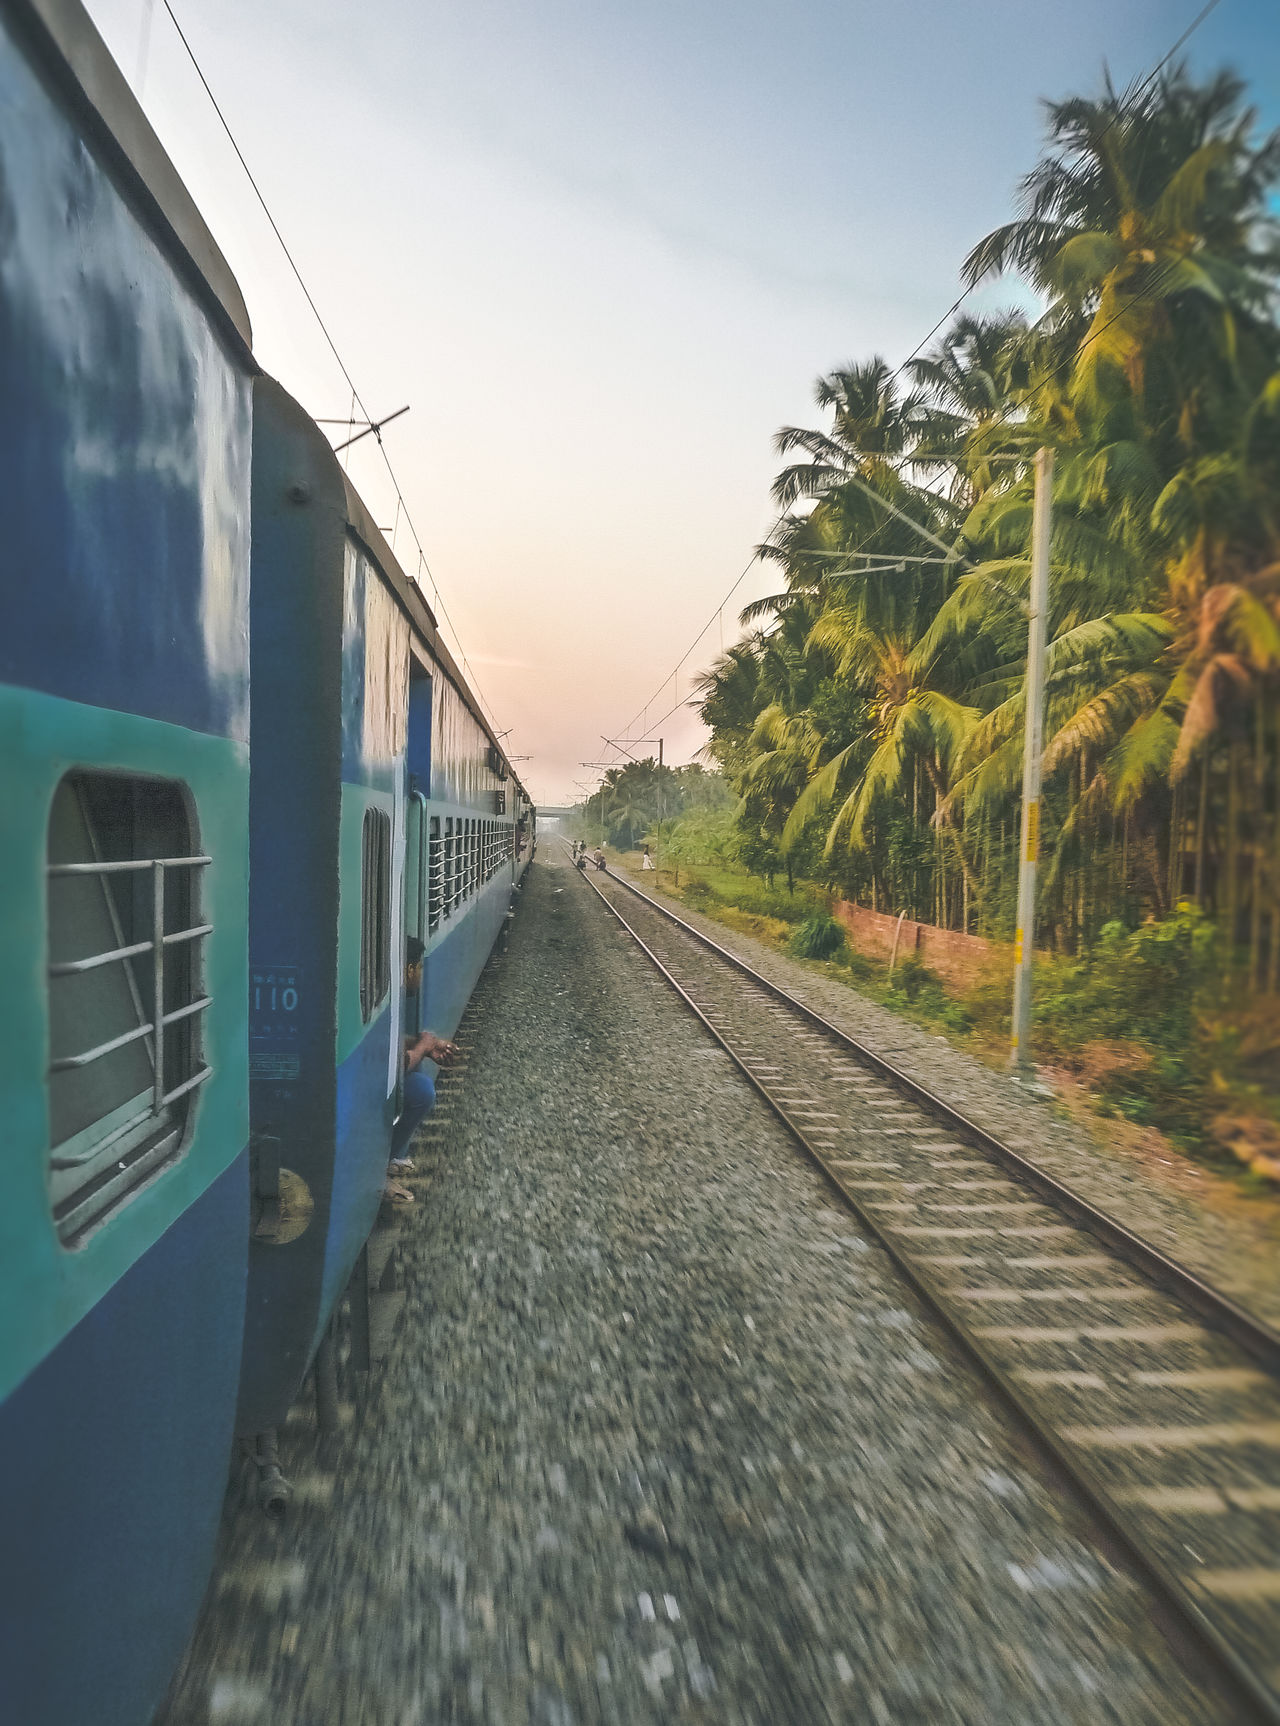 Hippie India Indian Journey Kerala Moving One Person Outdoors Palmtrees Rail Transportation Railroad Track Railway Railway Track Sky Soft Light Sunset The Way Forward Train - Vehicle Transportation Travel Traveling Travelling